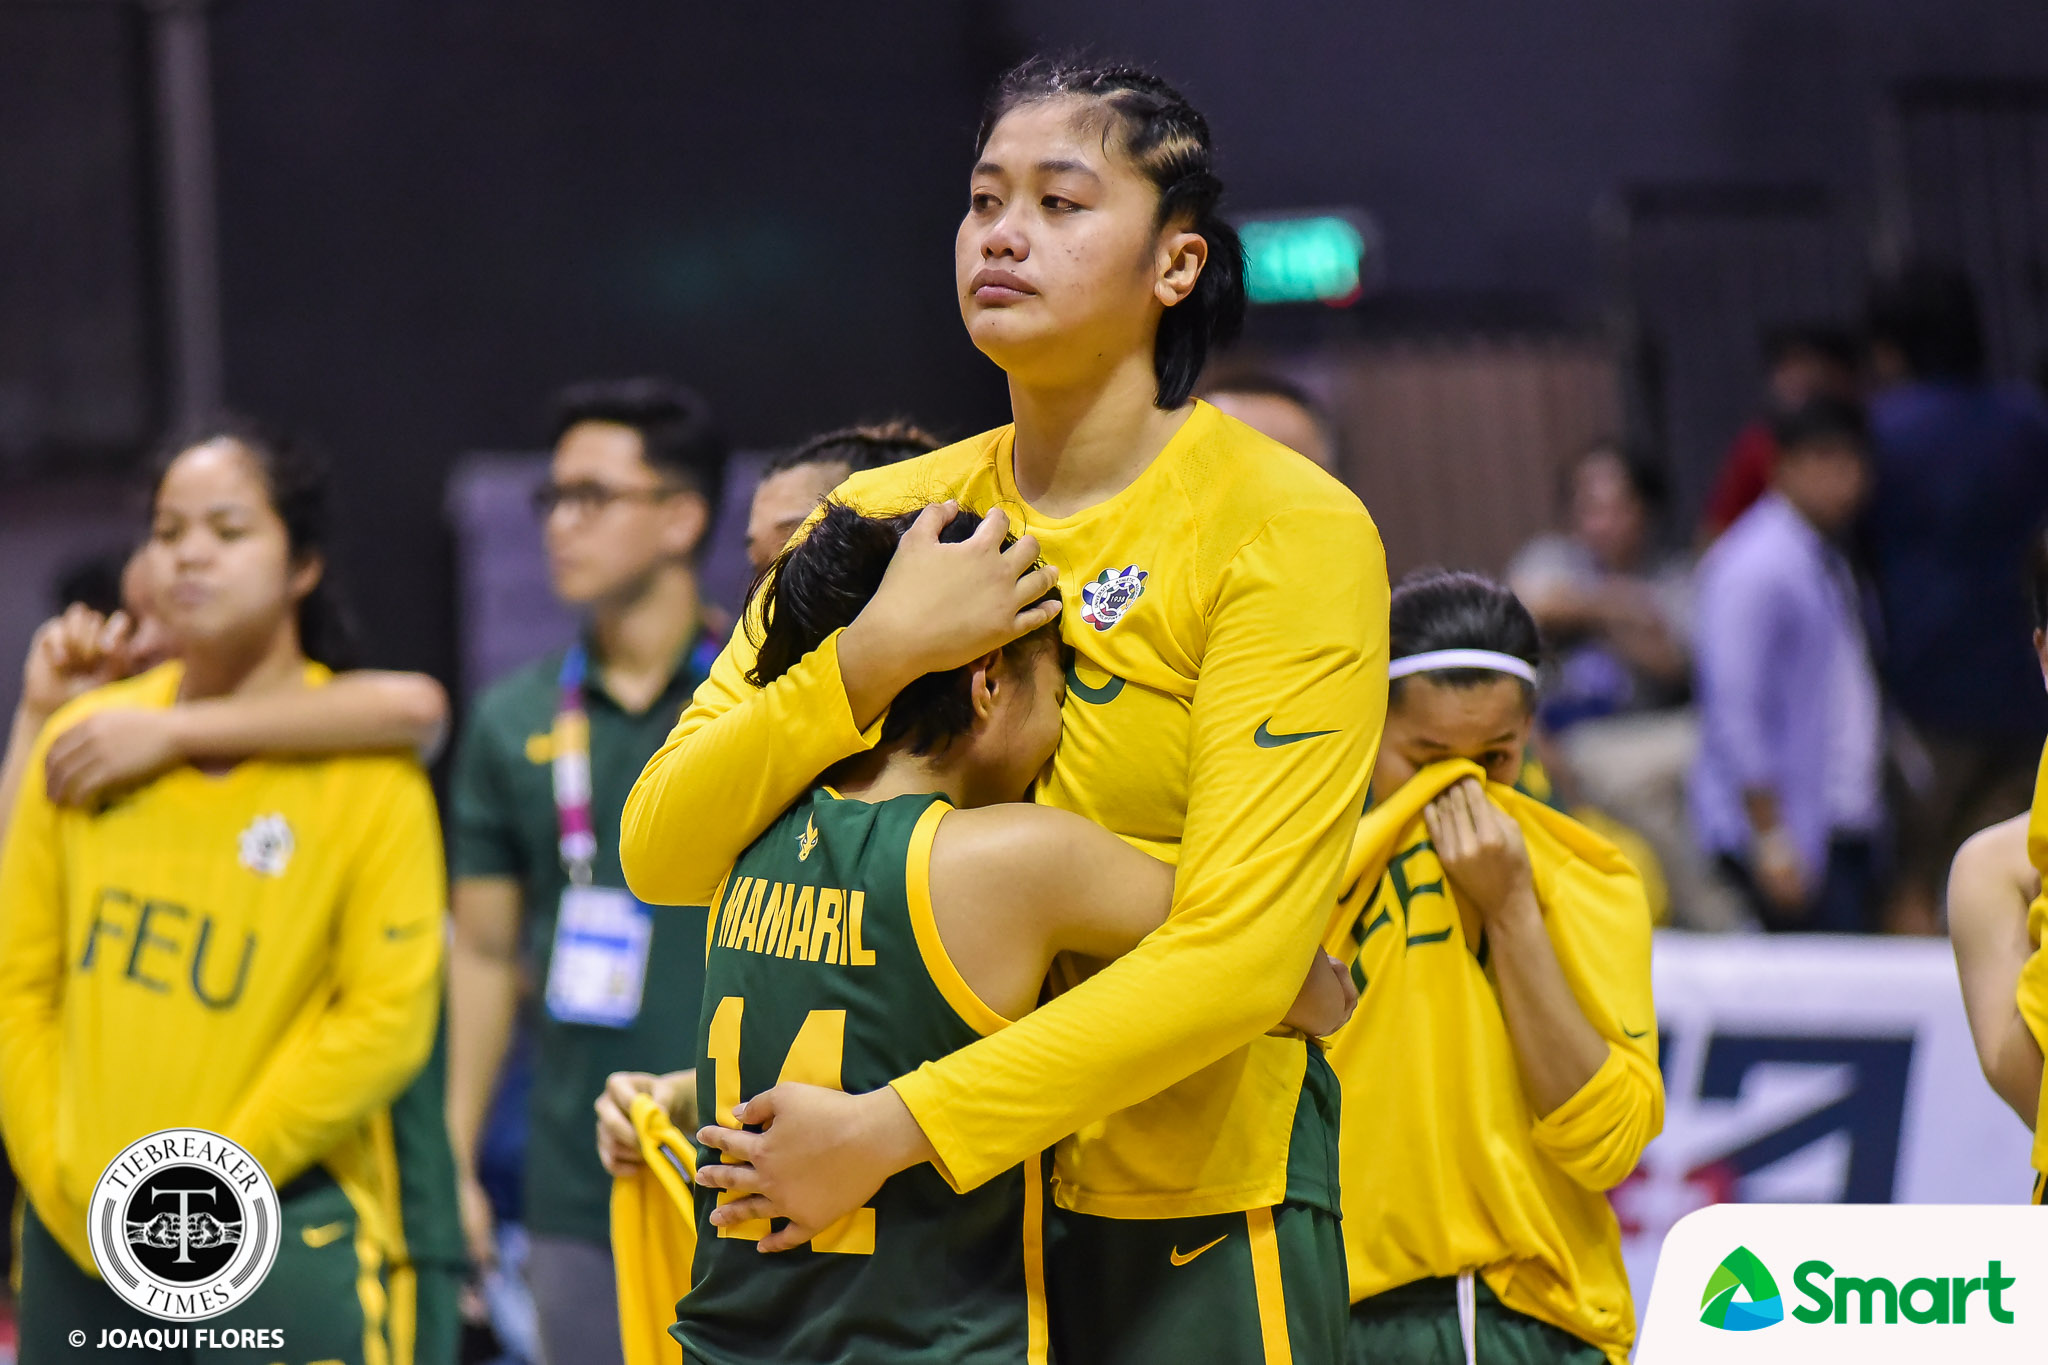 Tiebreaker Times Despite somber exit, Clare Castro glad to have kept promise to FEU Basketball FEU News UAAP  UAAP Season 82 Women's Basketball UAAP Season 82 FEU Women's Basketball Clare Castro